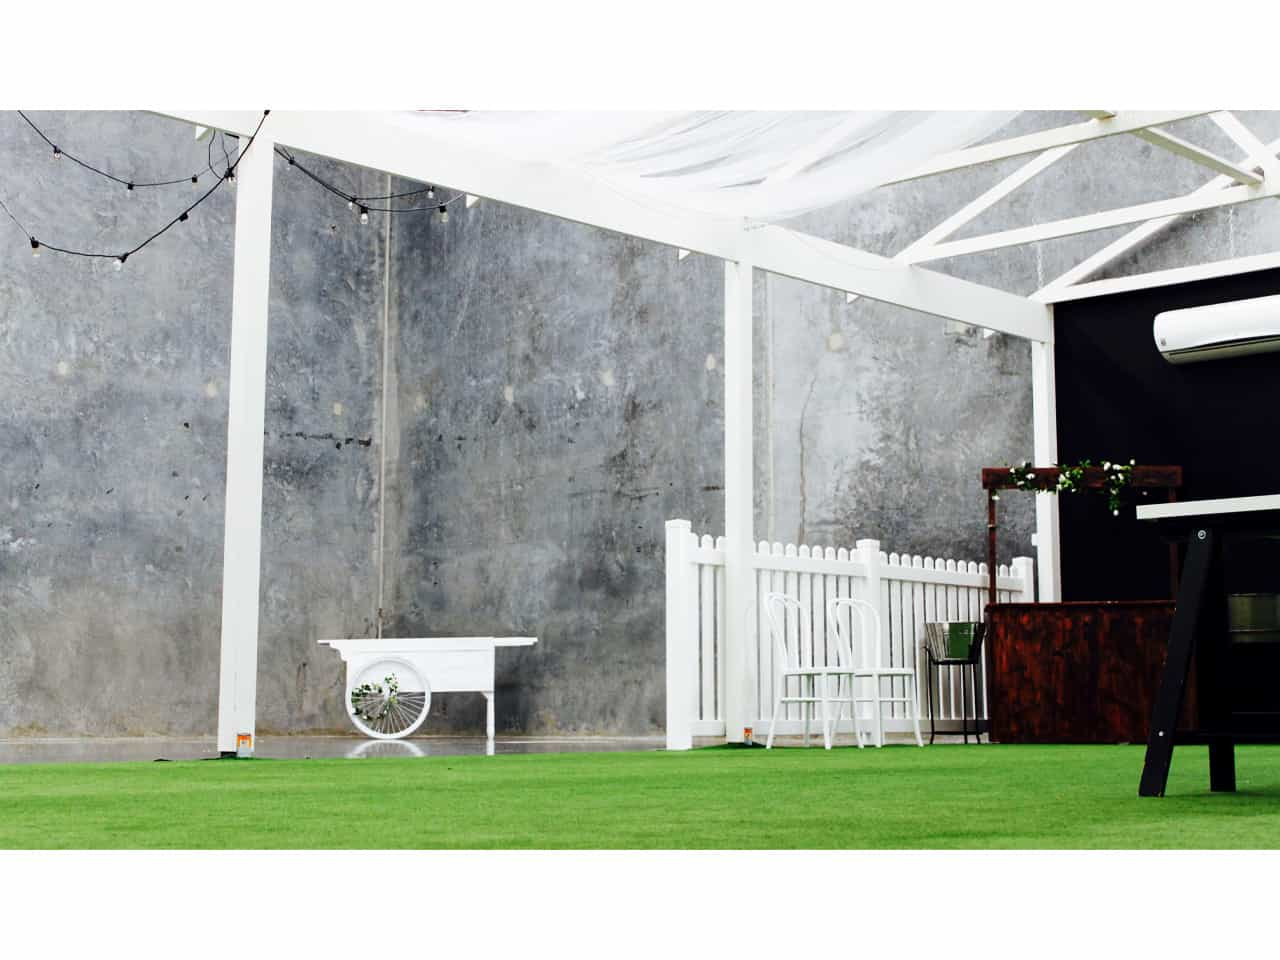 Open area function space with green lawn under marquee